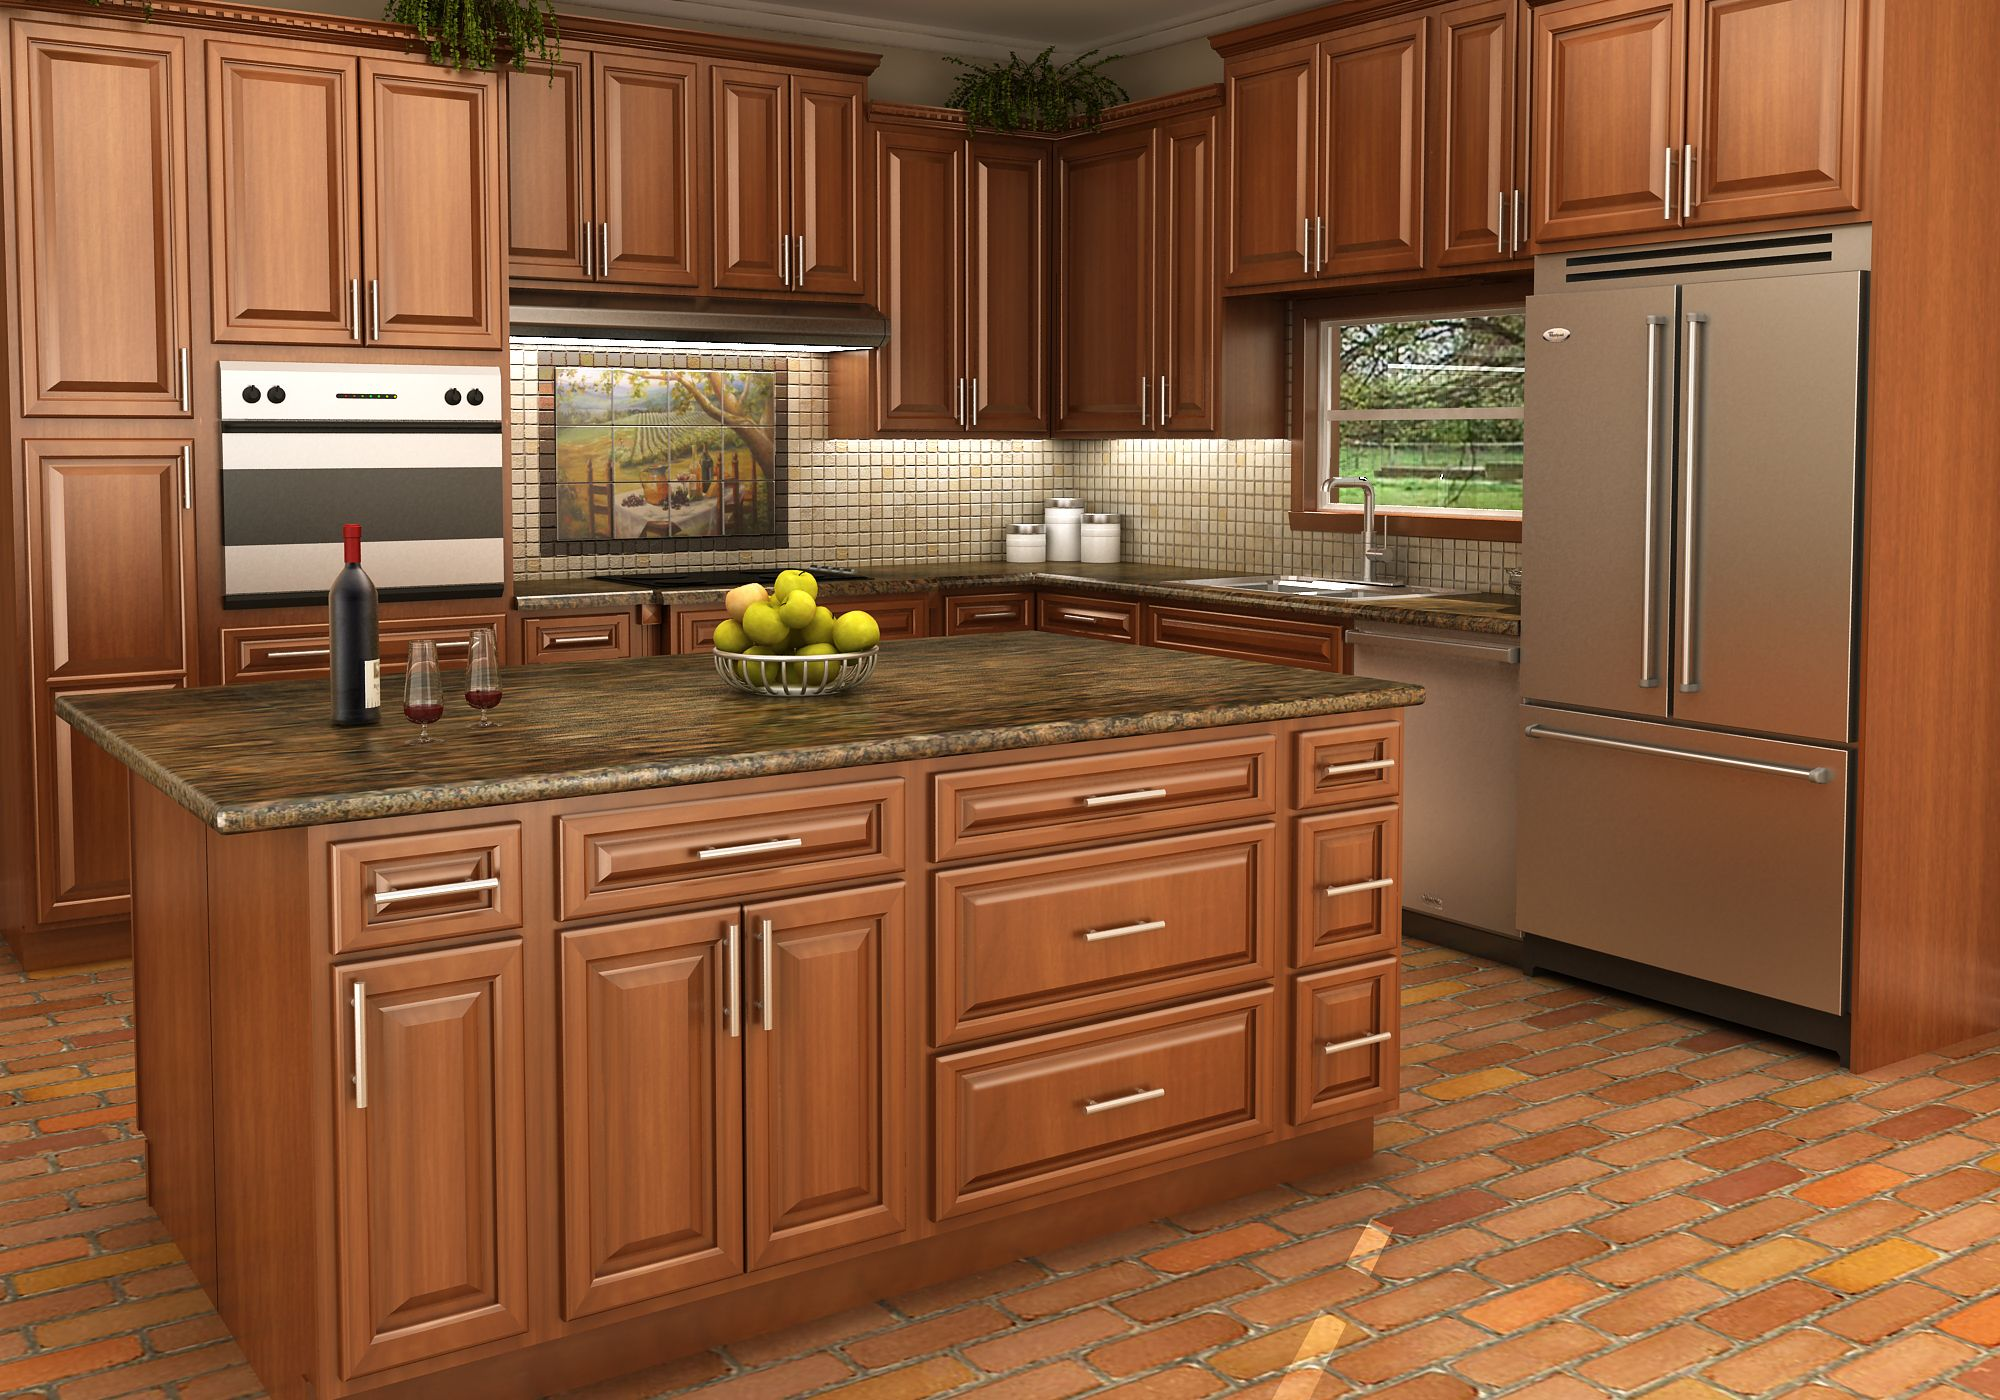 Kitchen Cabinet Finishes Spice Maple Cabinet Finish Finished Kitchen Cabinets Maple Kitchen Cabinets Maple Cabinets Kitchen Cabinets In Bathroom